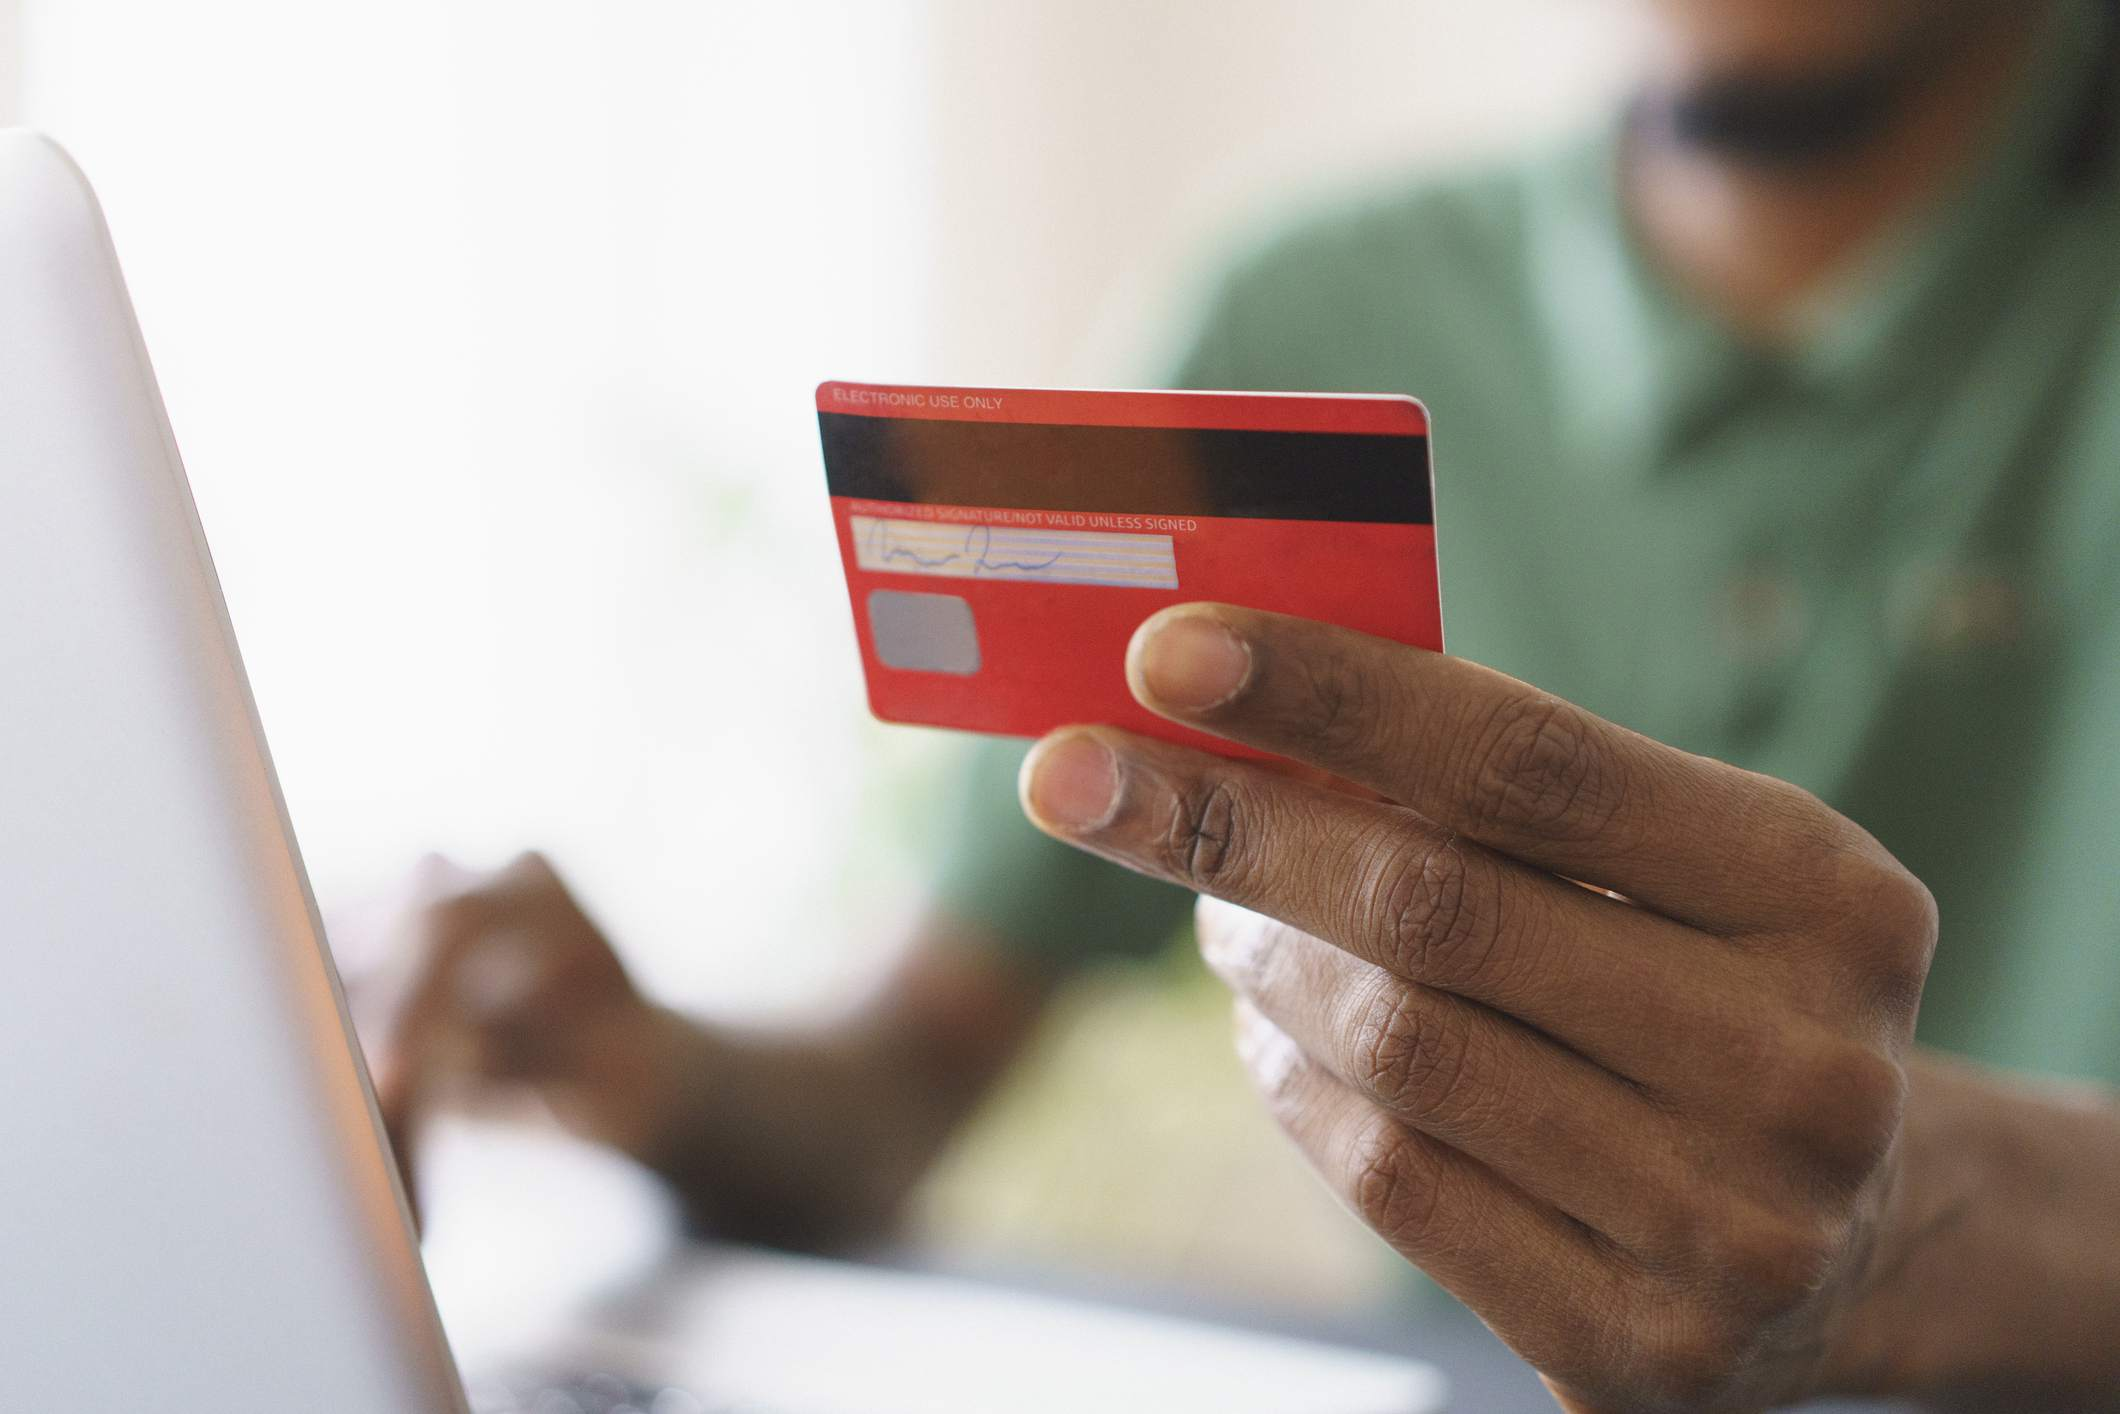 Close-up of man's hand holding a credit card in front of a laptop